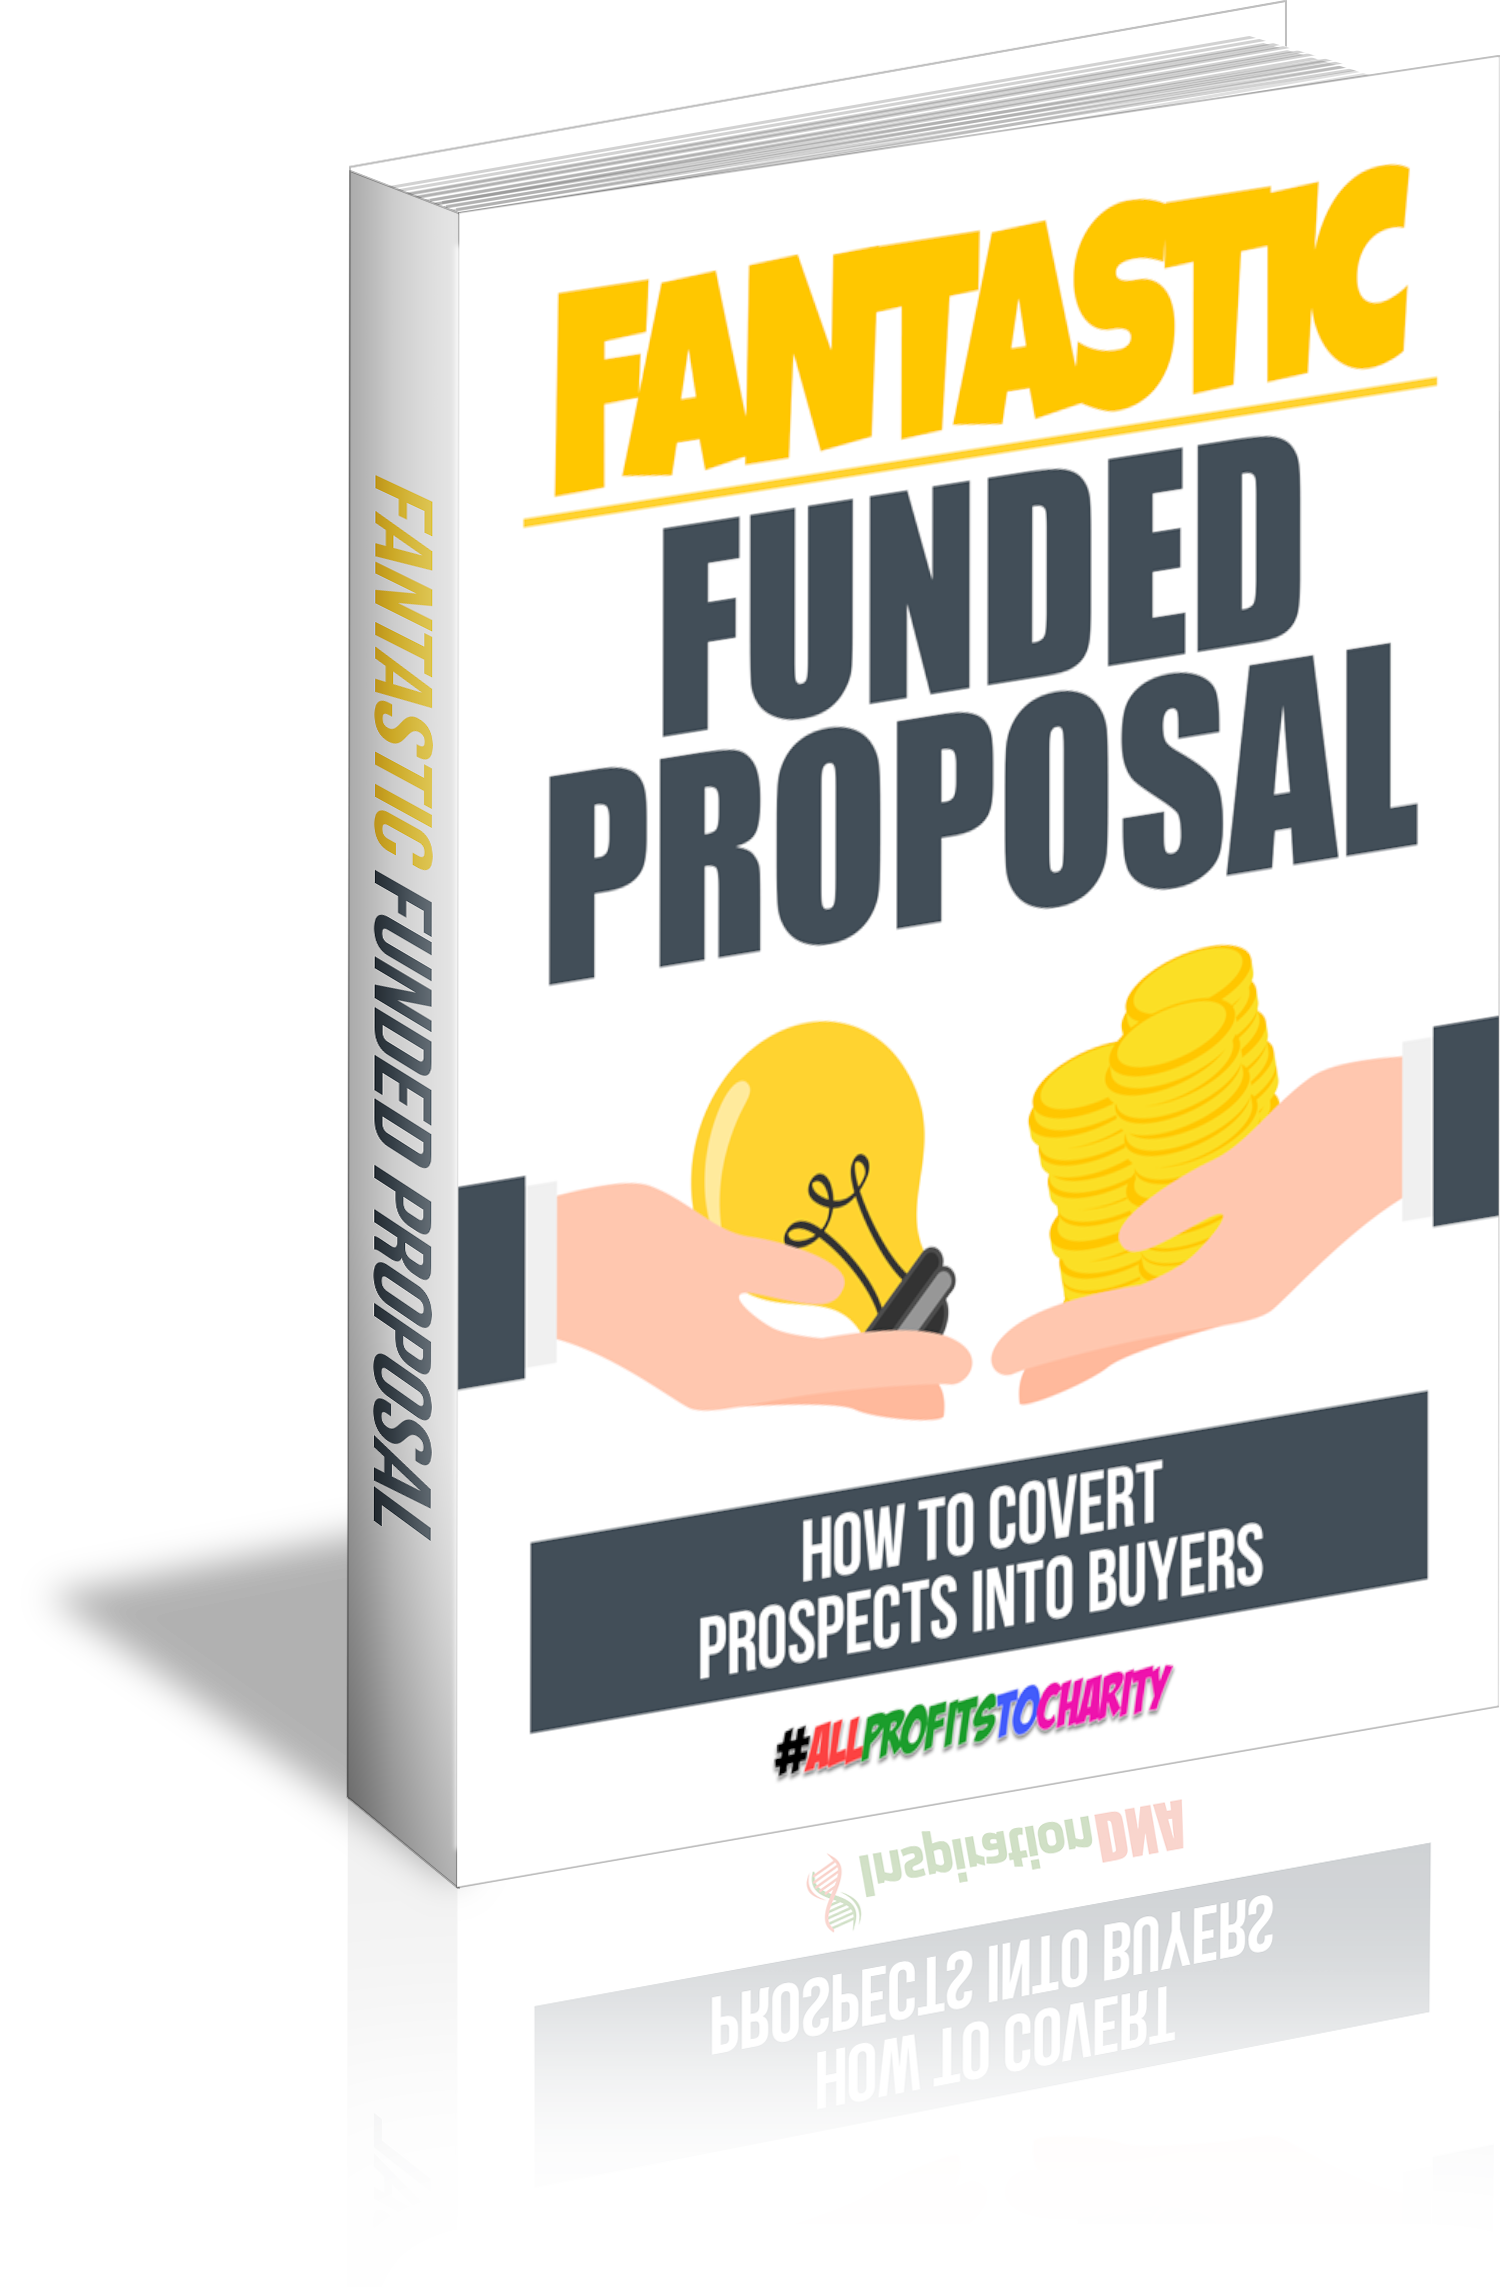 Fantastic Funded Proposal cover